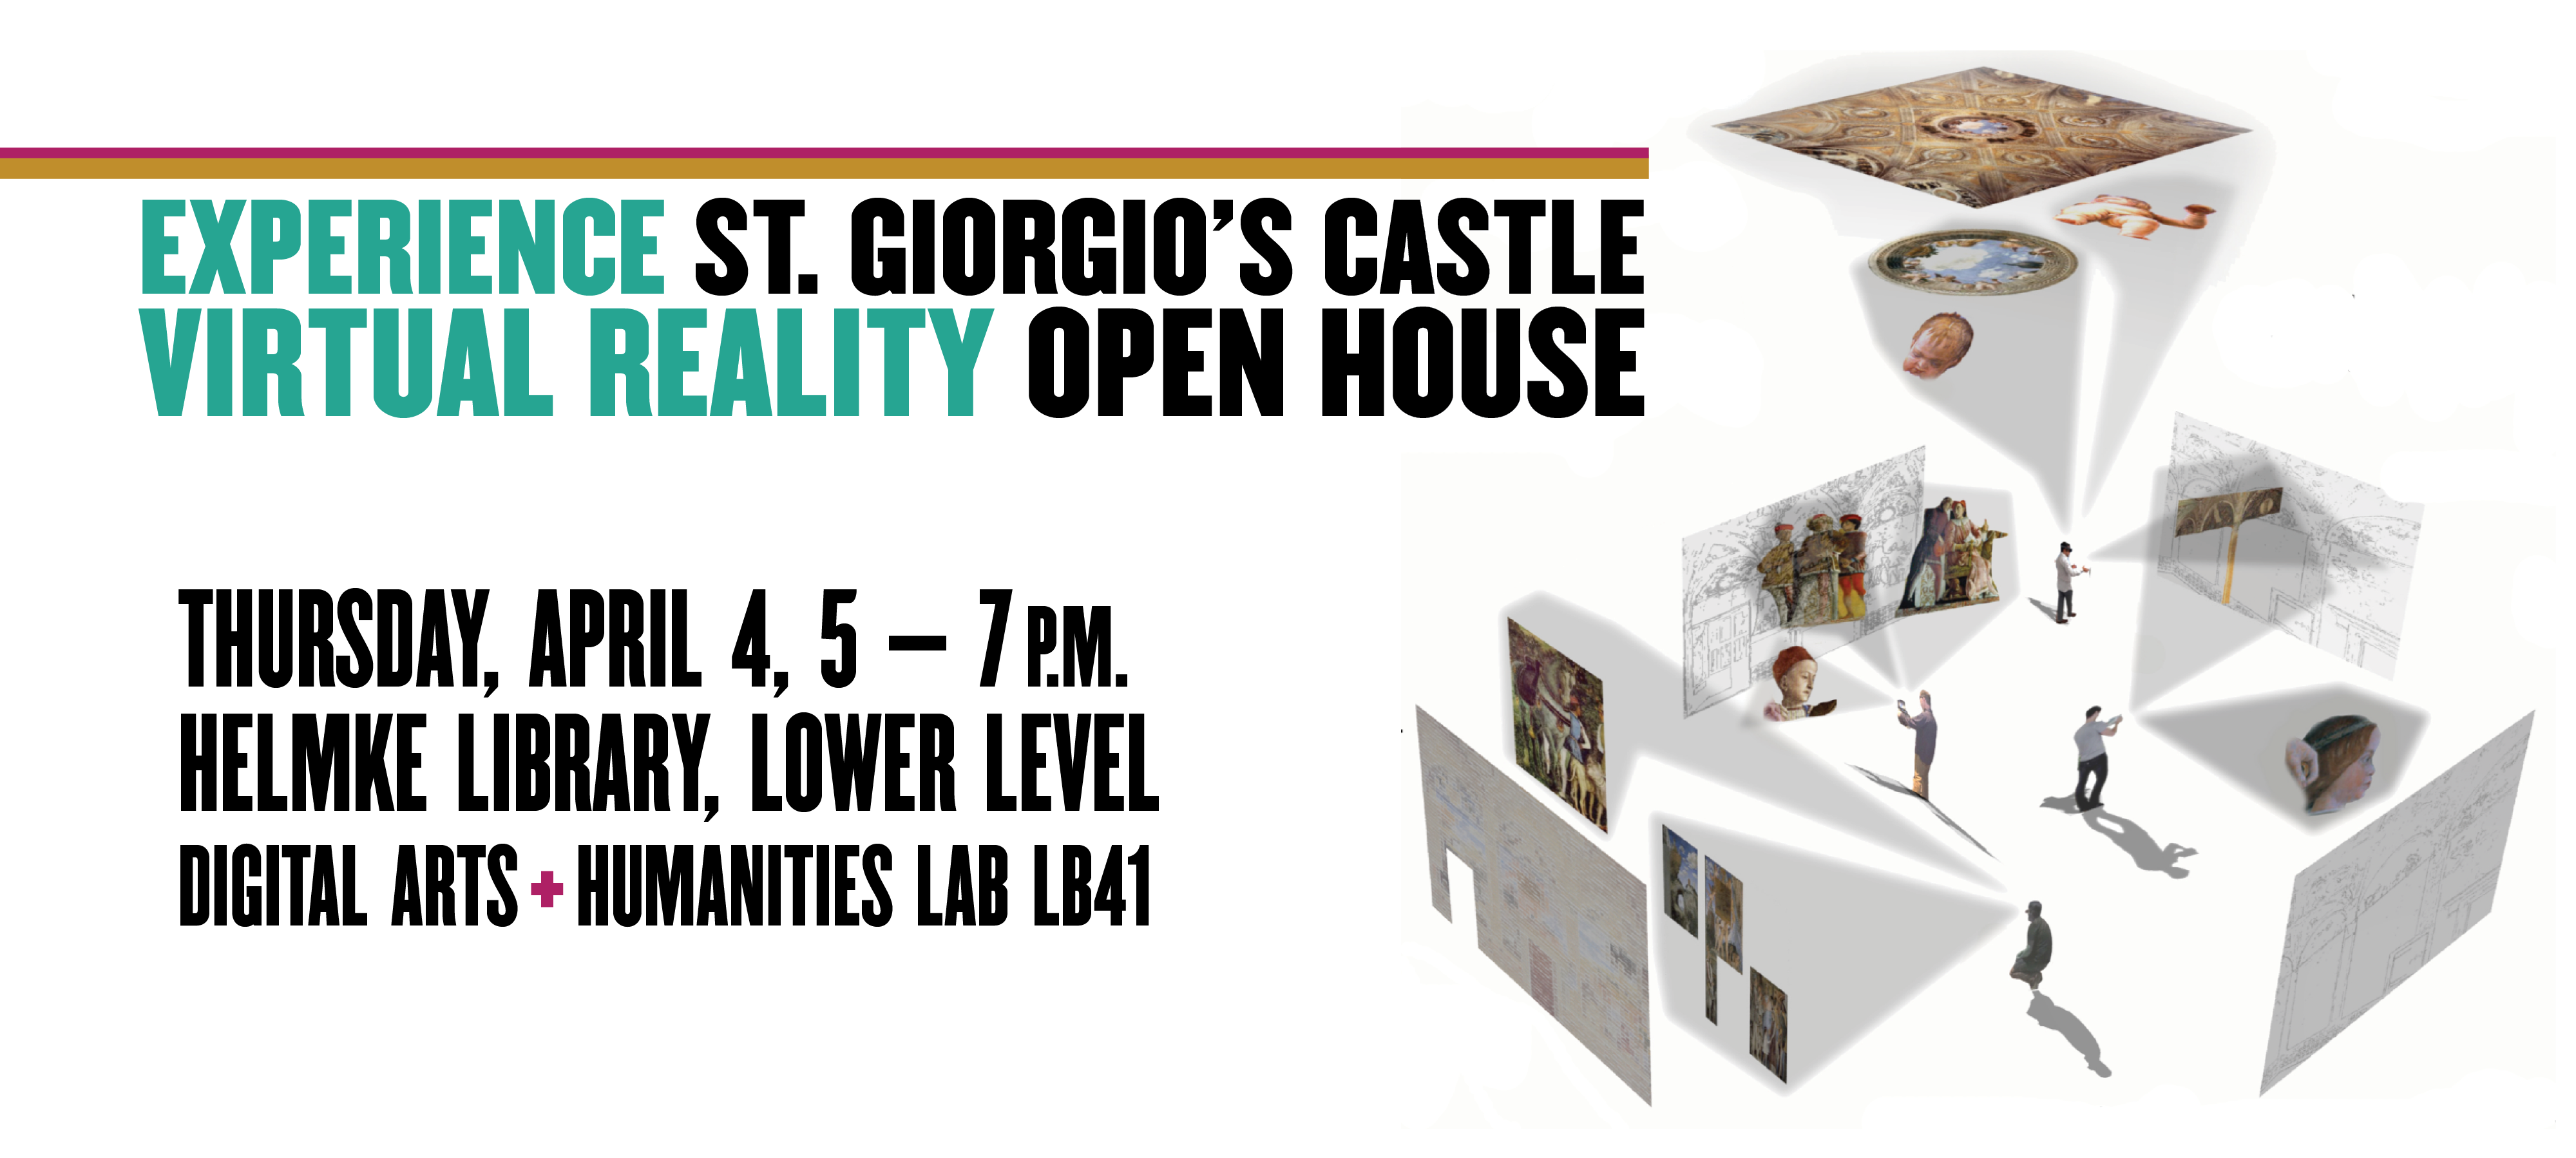 Experience St. Giorgio's Castle: Virtual Reality Open House